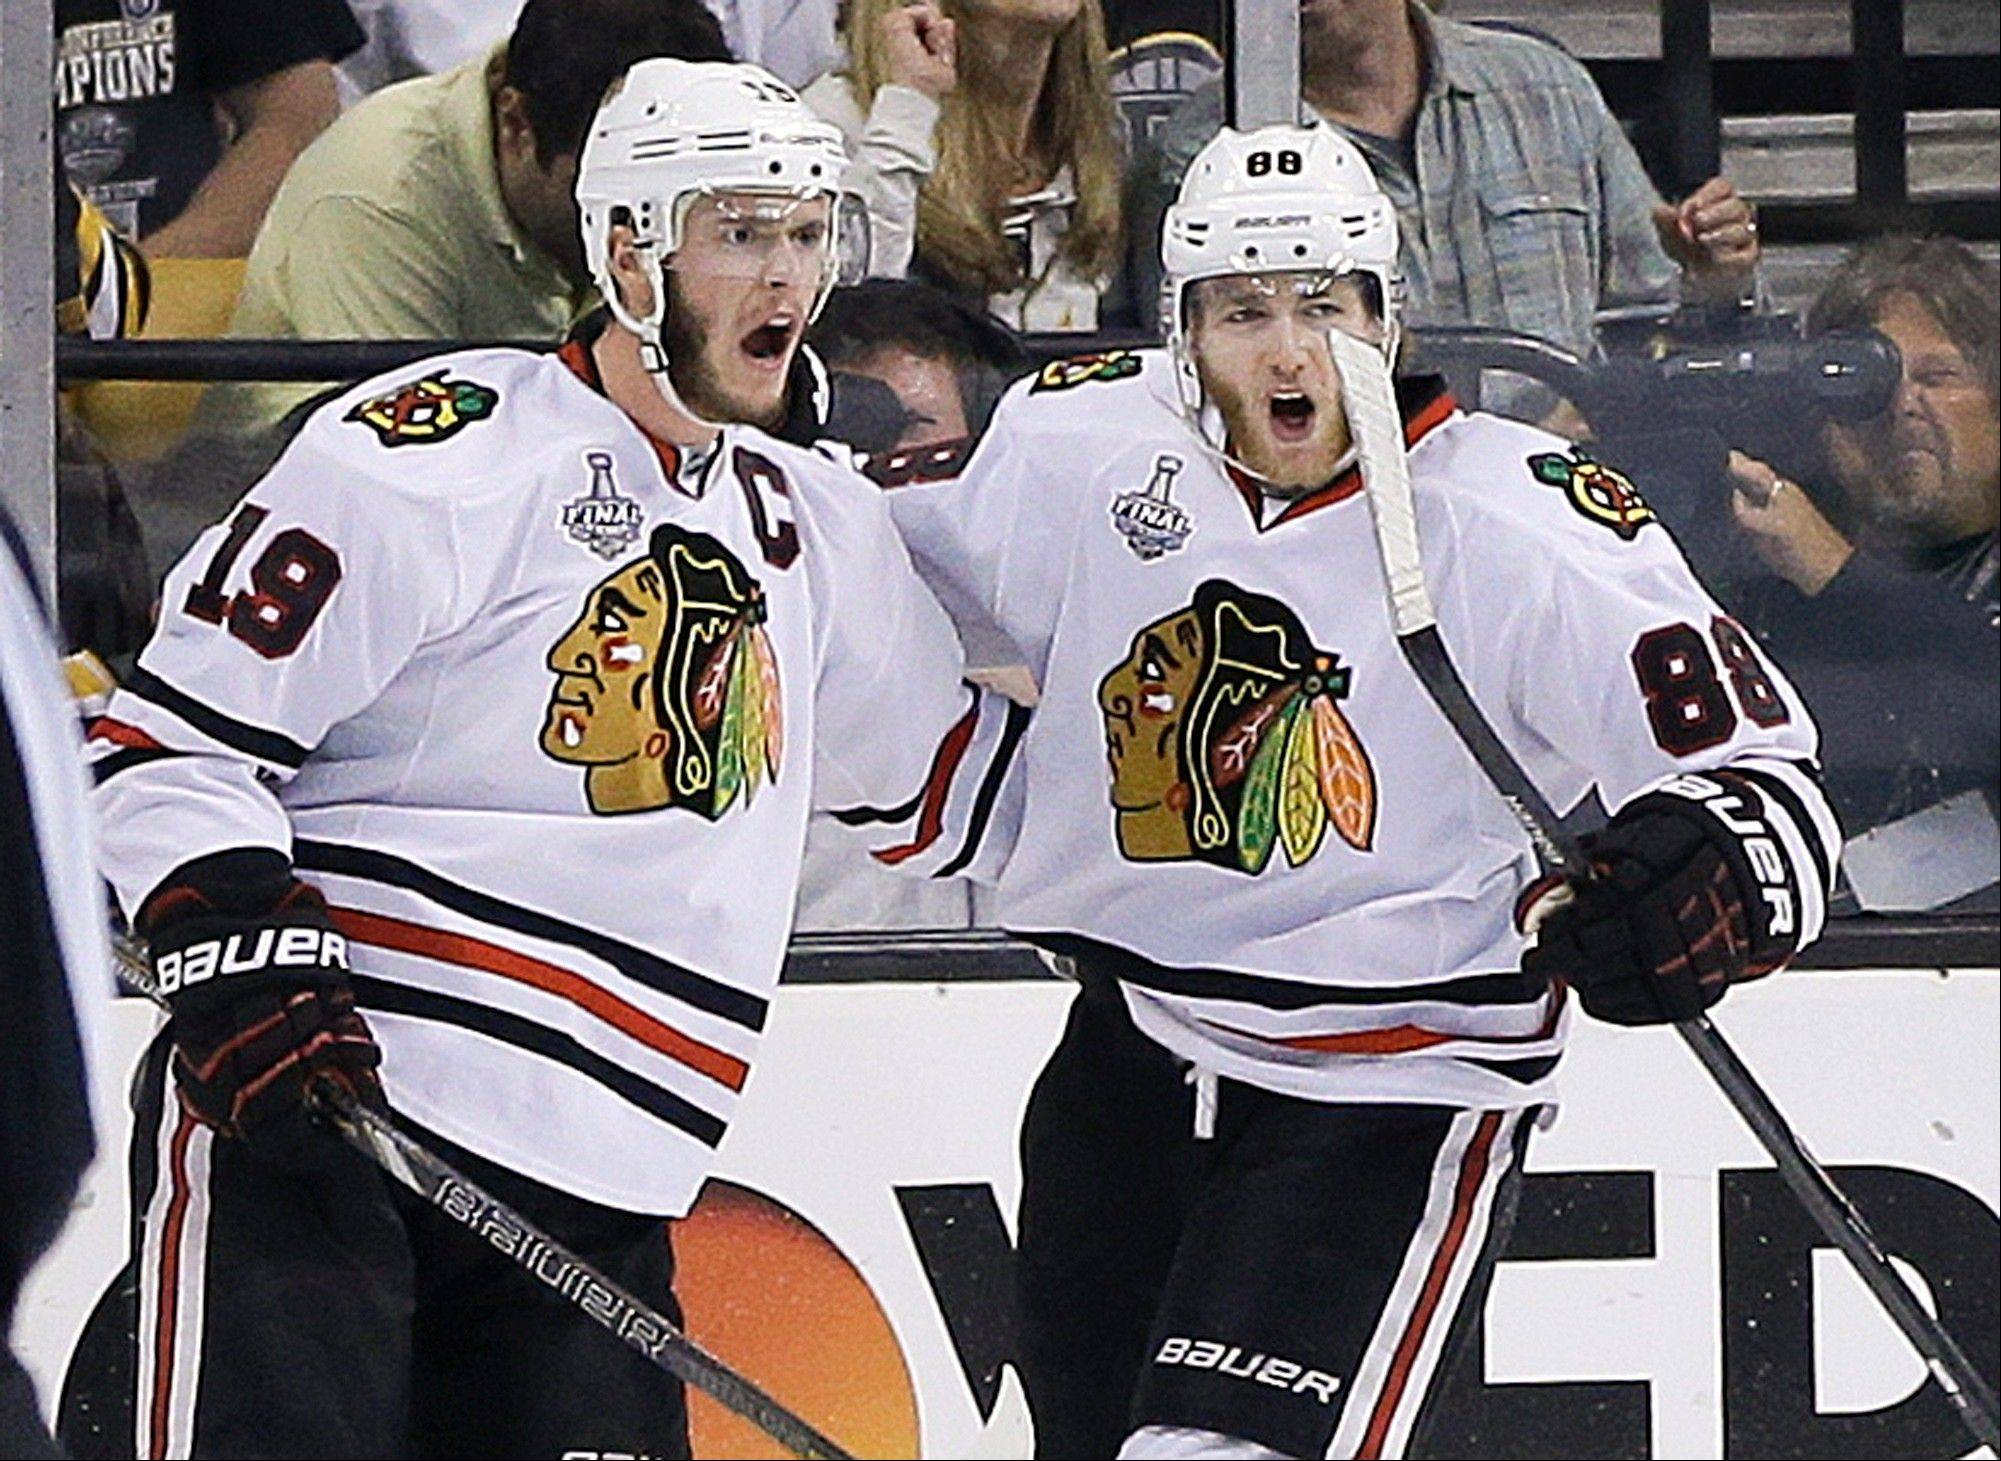 Now starting their seventh season with the Blackhawks, center Jonathan Toews (19) and winger wing Patrick Kane (88) will be trying to win their third Stanley Cup.